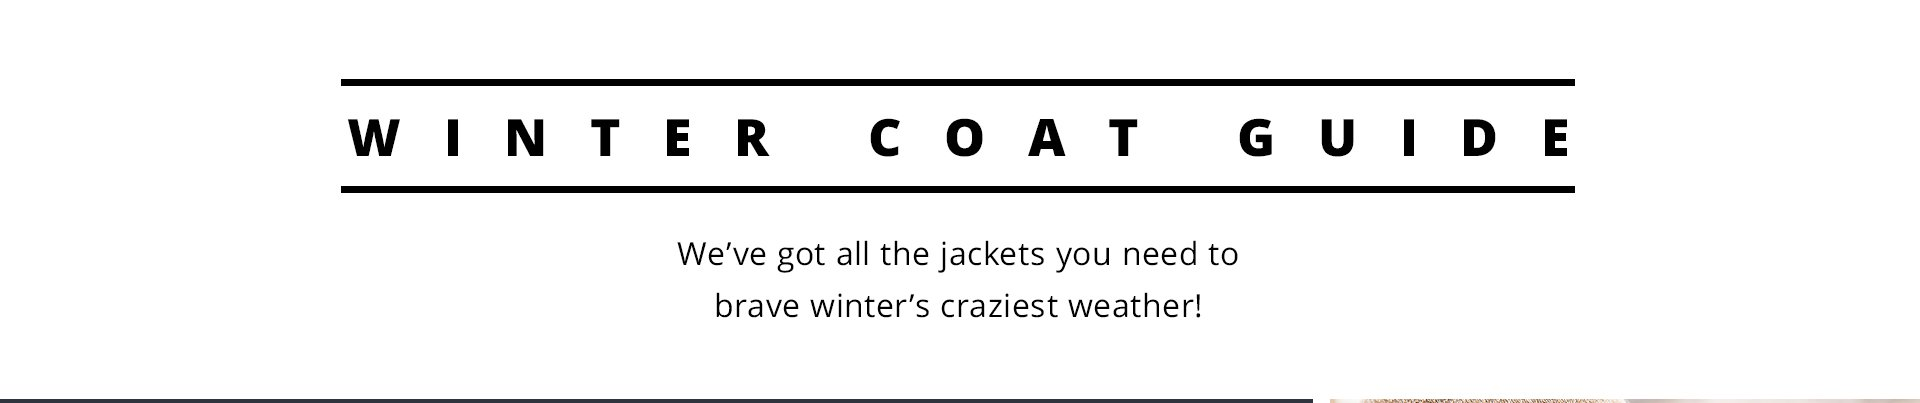 Winter Coat Guide Header